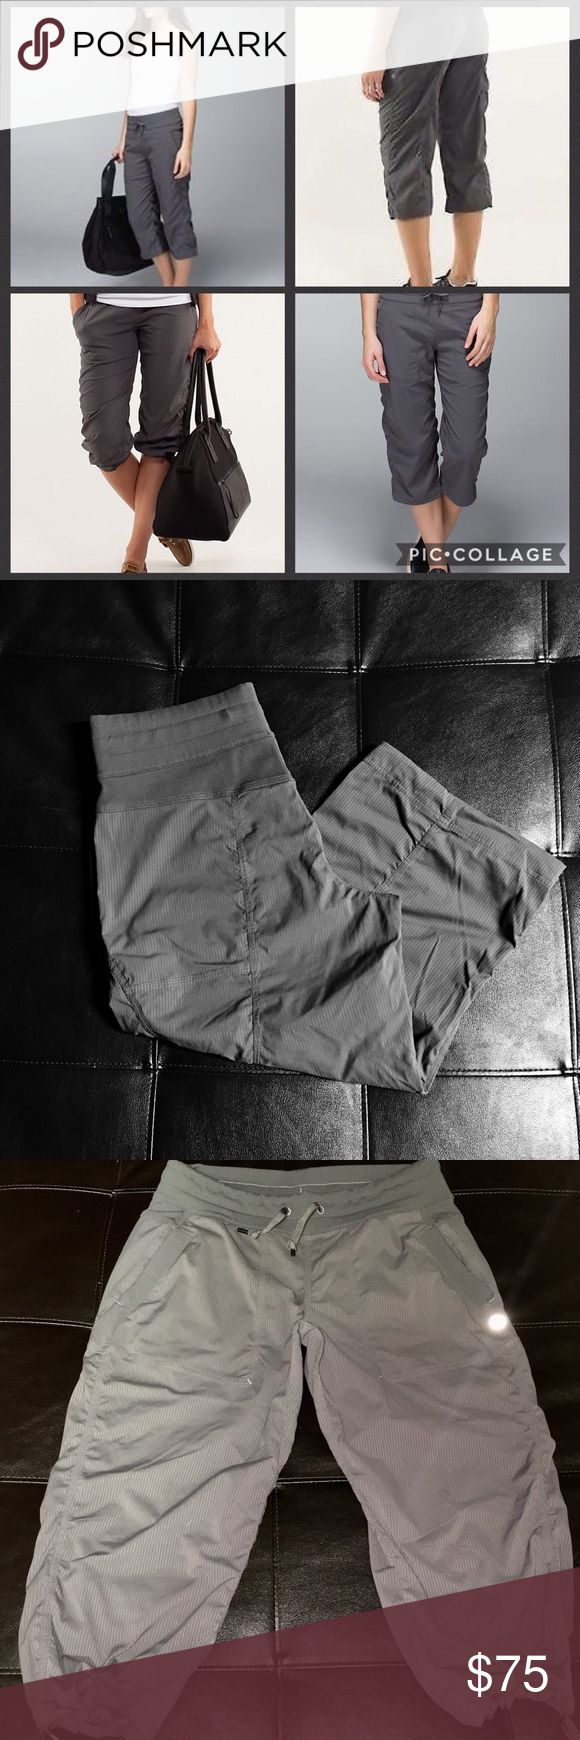 Lululemon dance studio crops fossil gray size 8 These have been worn a few times but cared for gently. The very top of the waistband in the front is rolled. Some Lulu lovers have an issue with this I personally do not. Lululemon's dance studios are notorious for this issue. It doesn't change the way they function or the way they look. The first pic are stock Internet photos pics 2 and 3 are the actual item. Fossil gray size 8 my price is firm lululemon athletica Pants Track Pants & Joggers